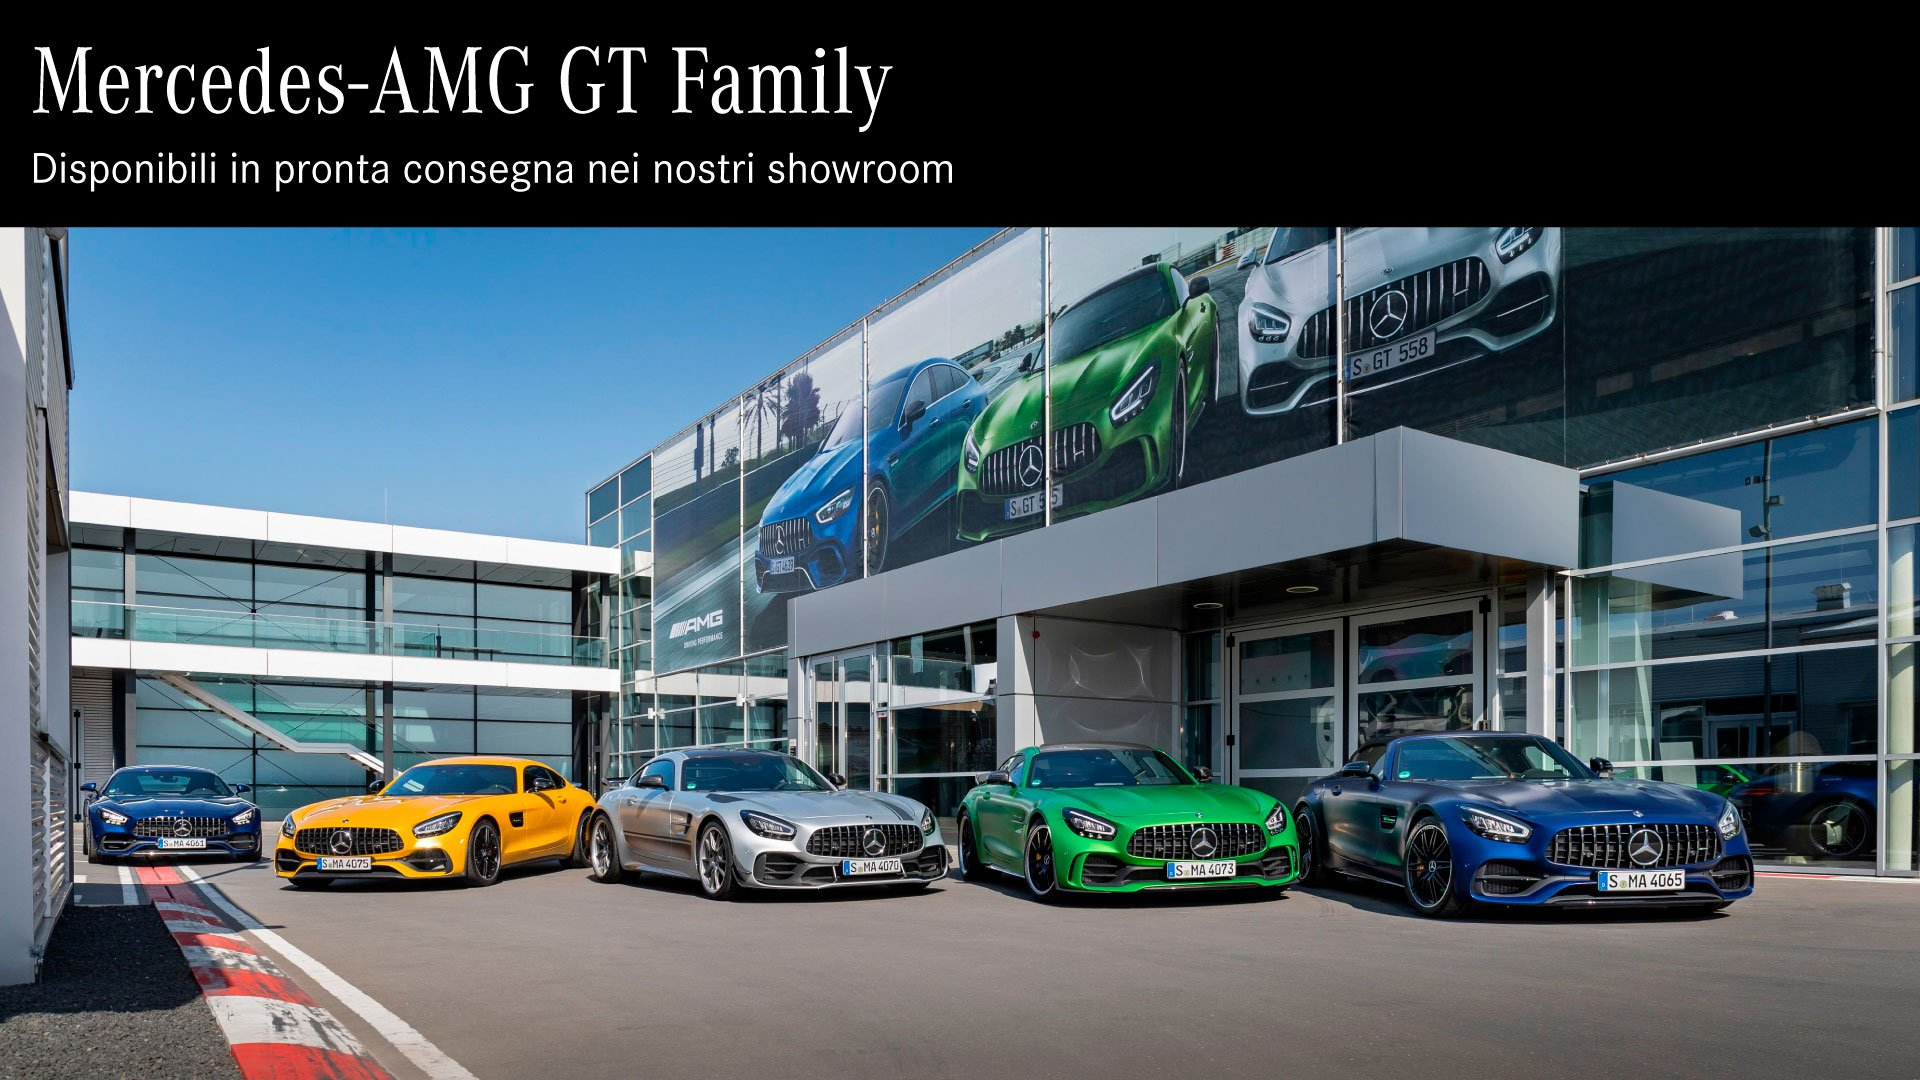 AMG GT family